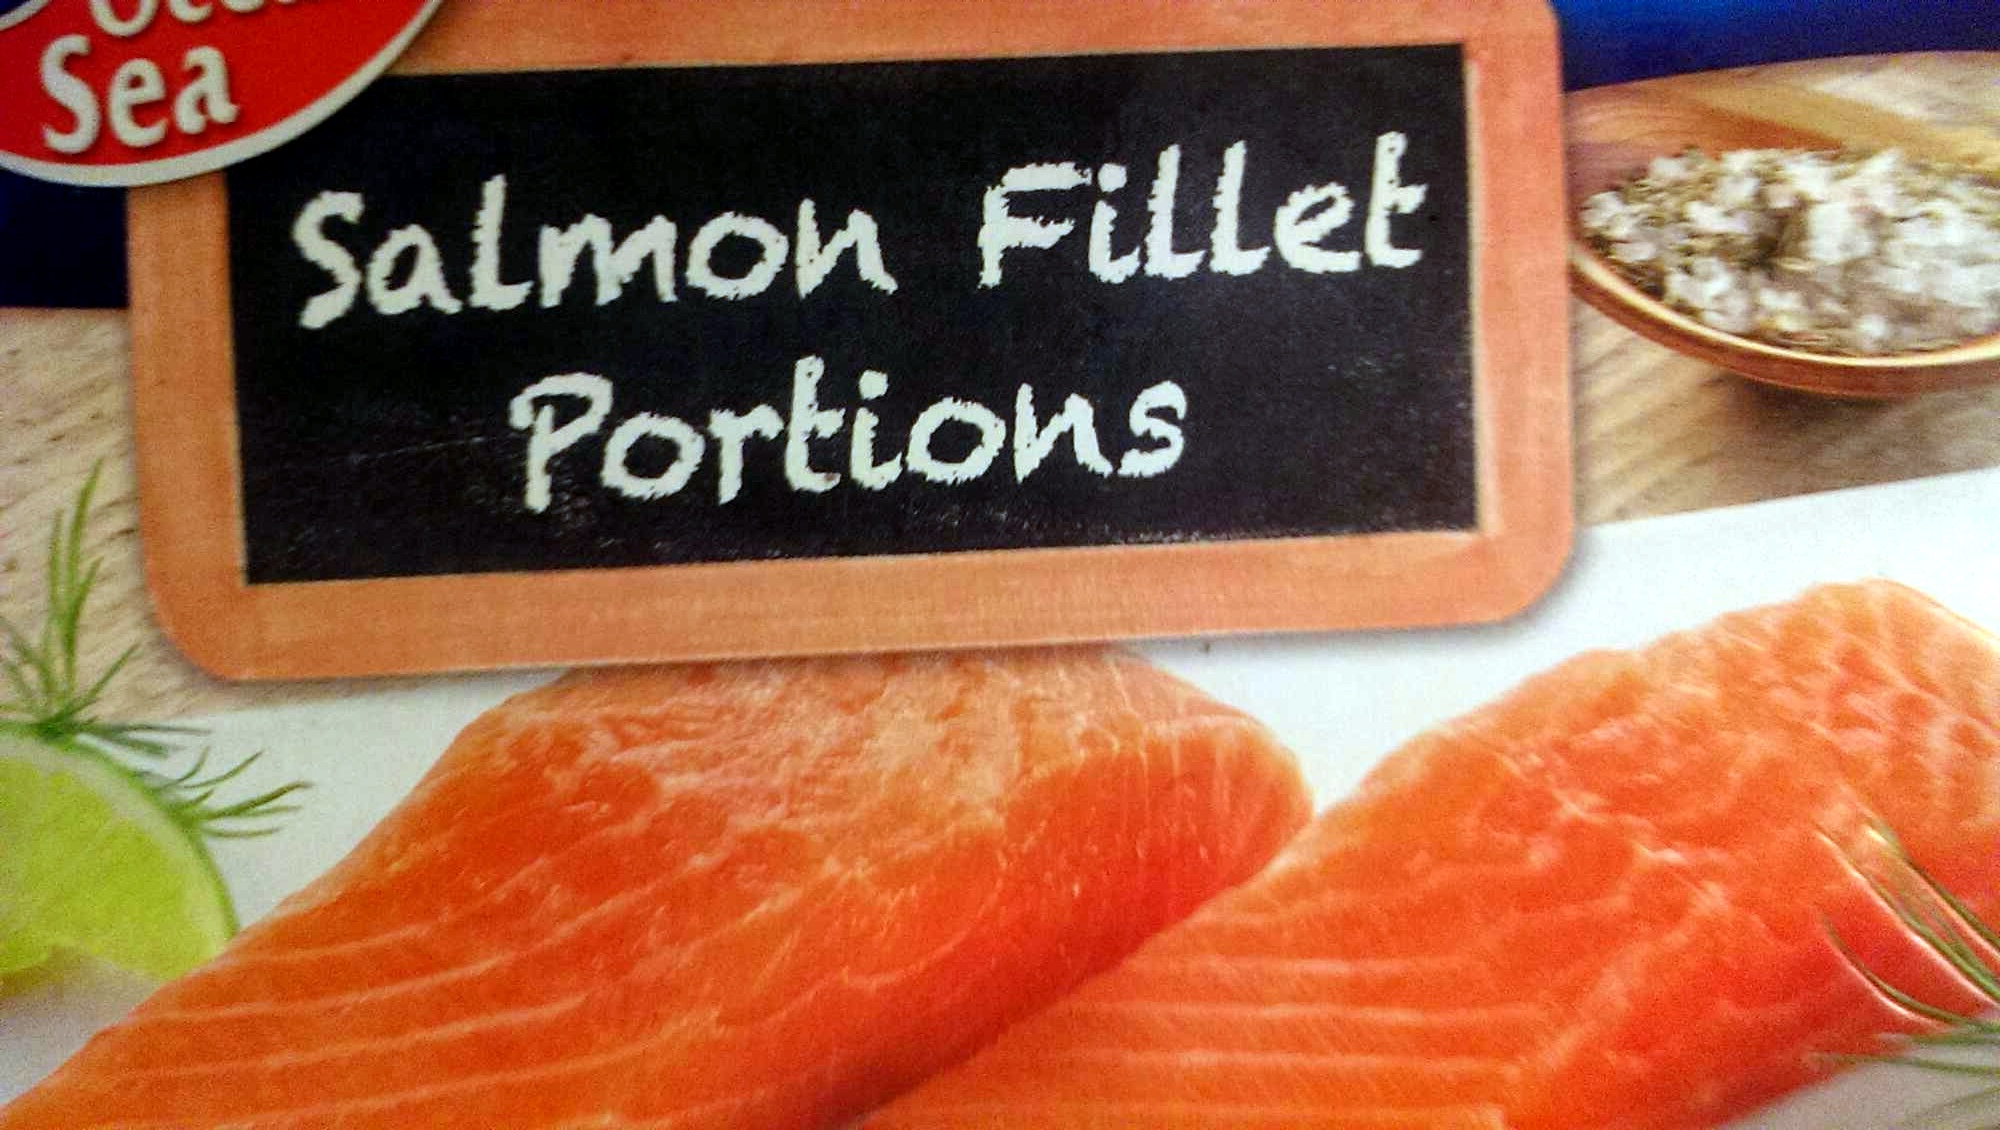 salmon fillet portions - Product